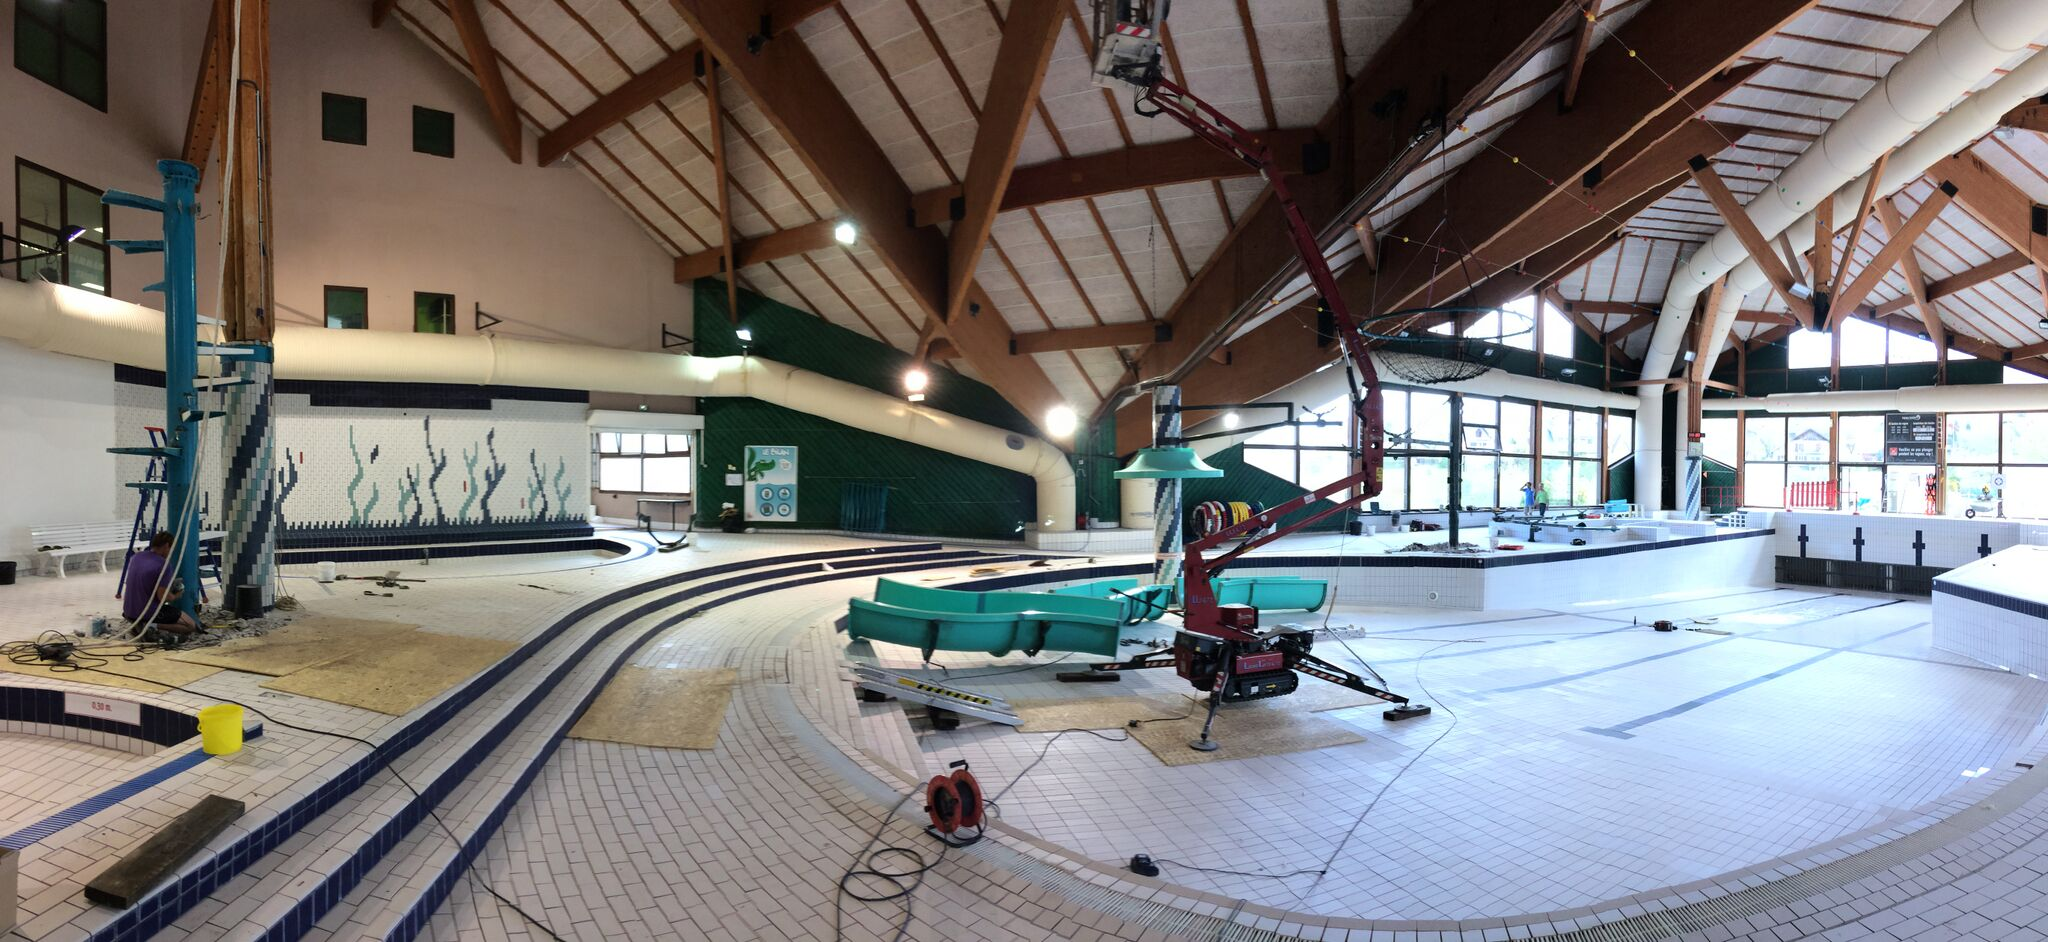 R novation du toboggan du centre aquatique marcel bonnard - Piscine villard de lans ...